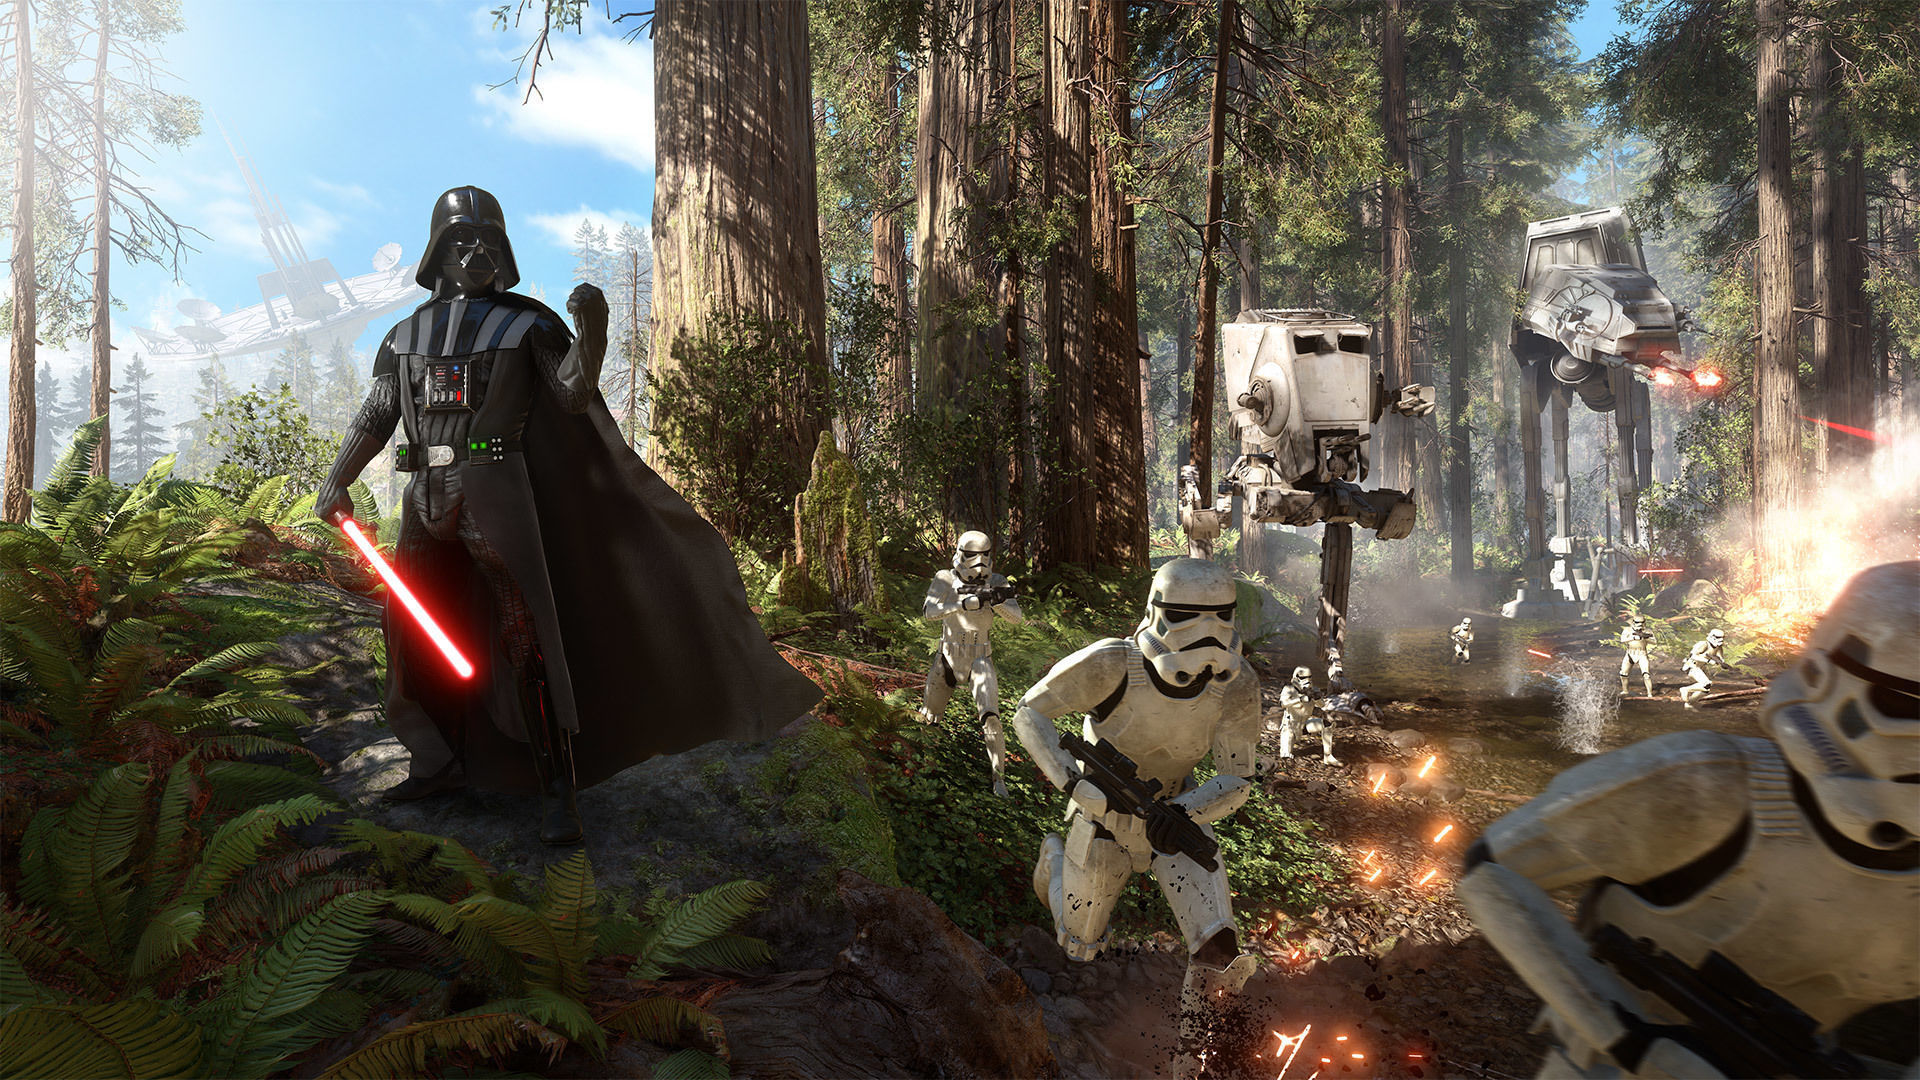 Battlefront 4k Wallpapers For Your Desktop Or Mobile Screen Free And Easy To Download